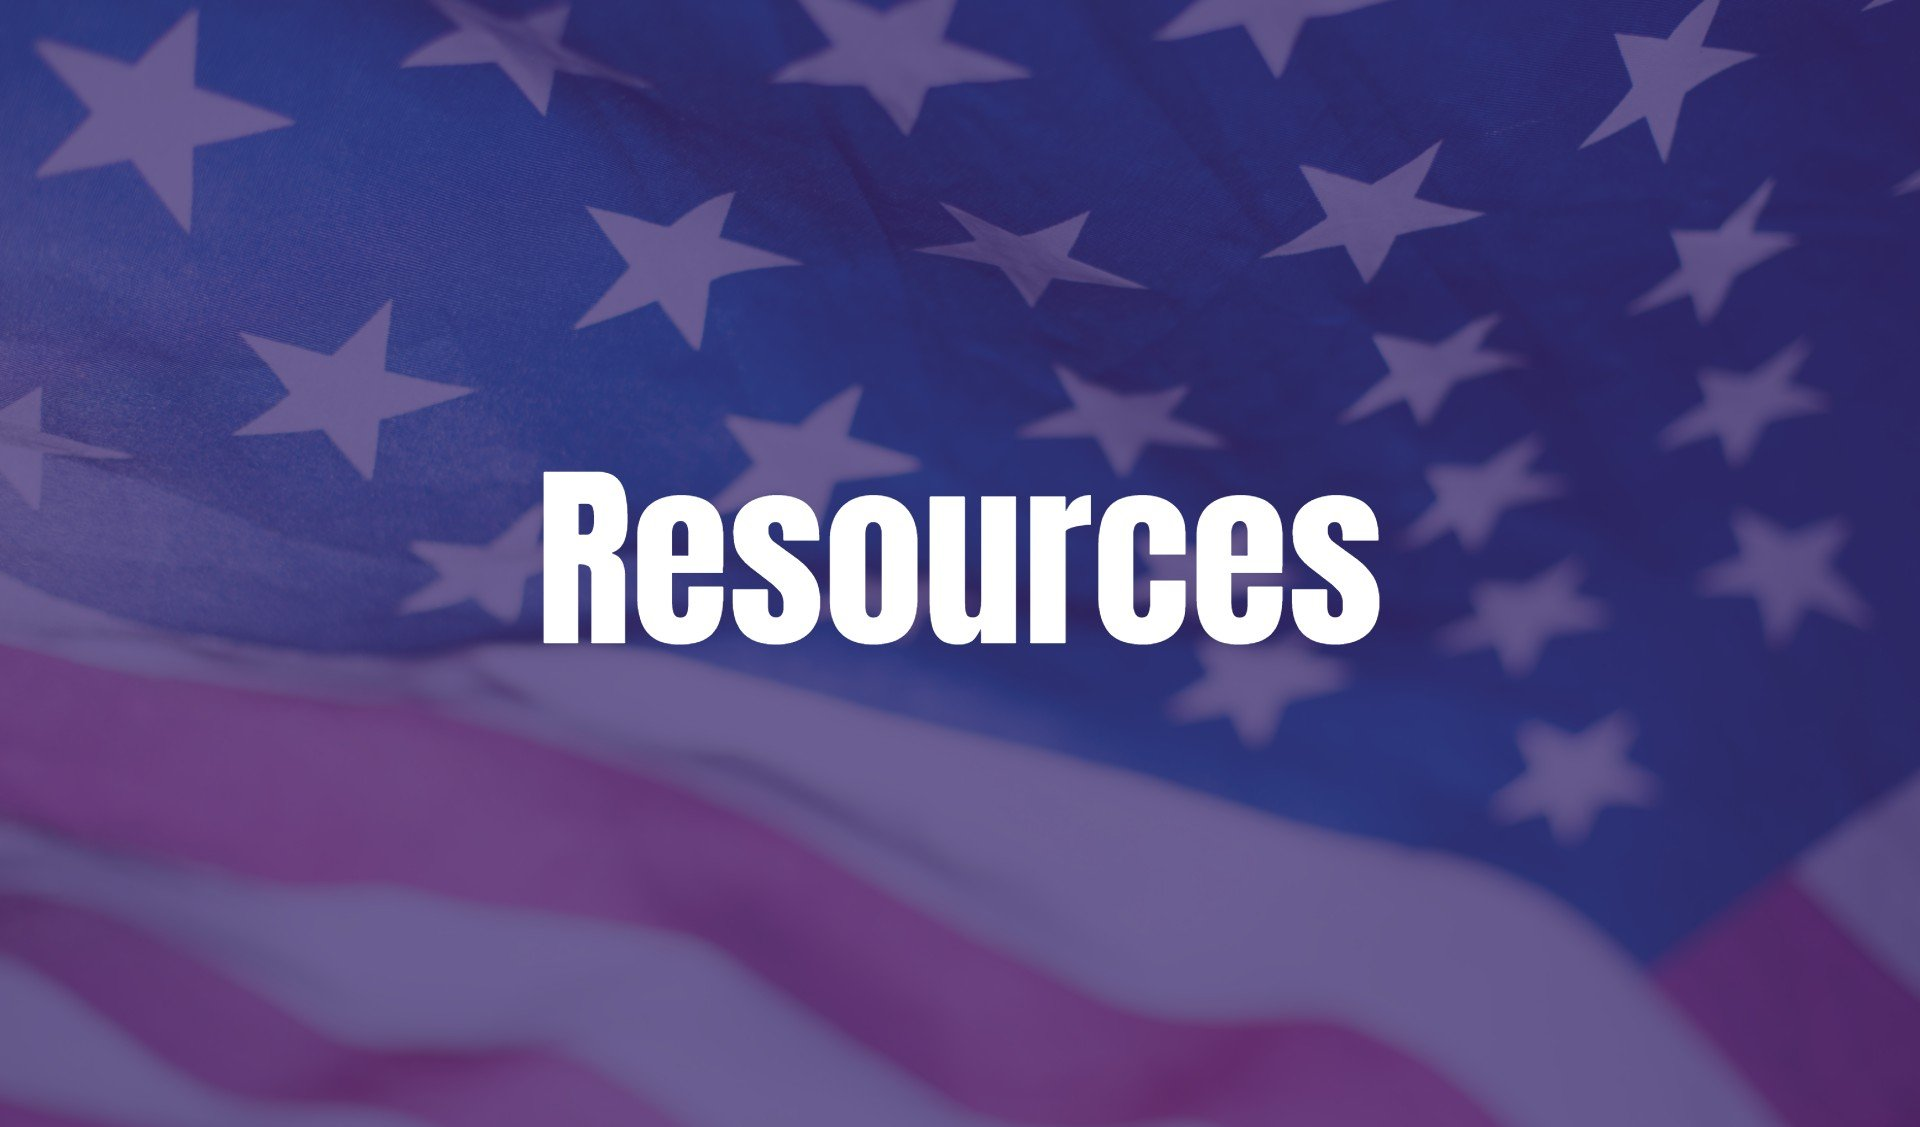 Resources text on an American flag background